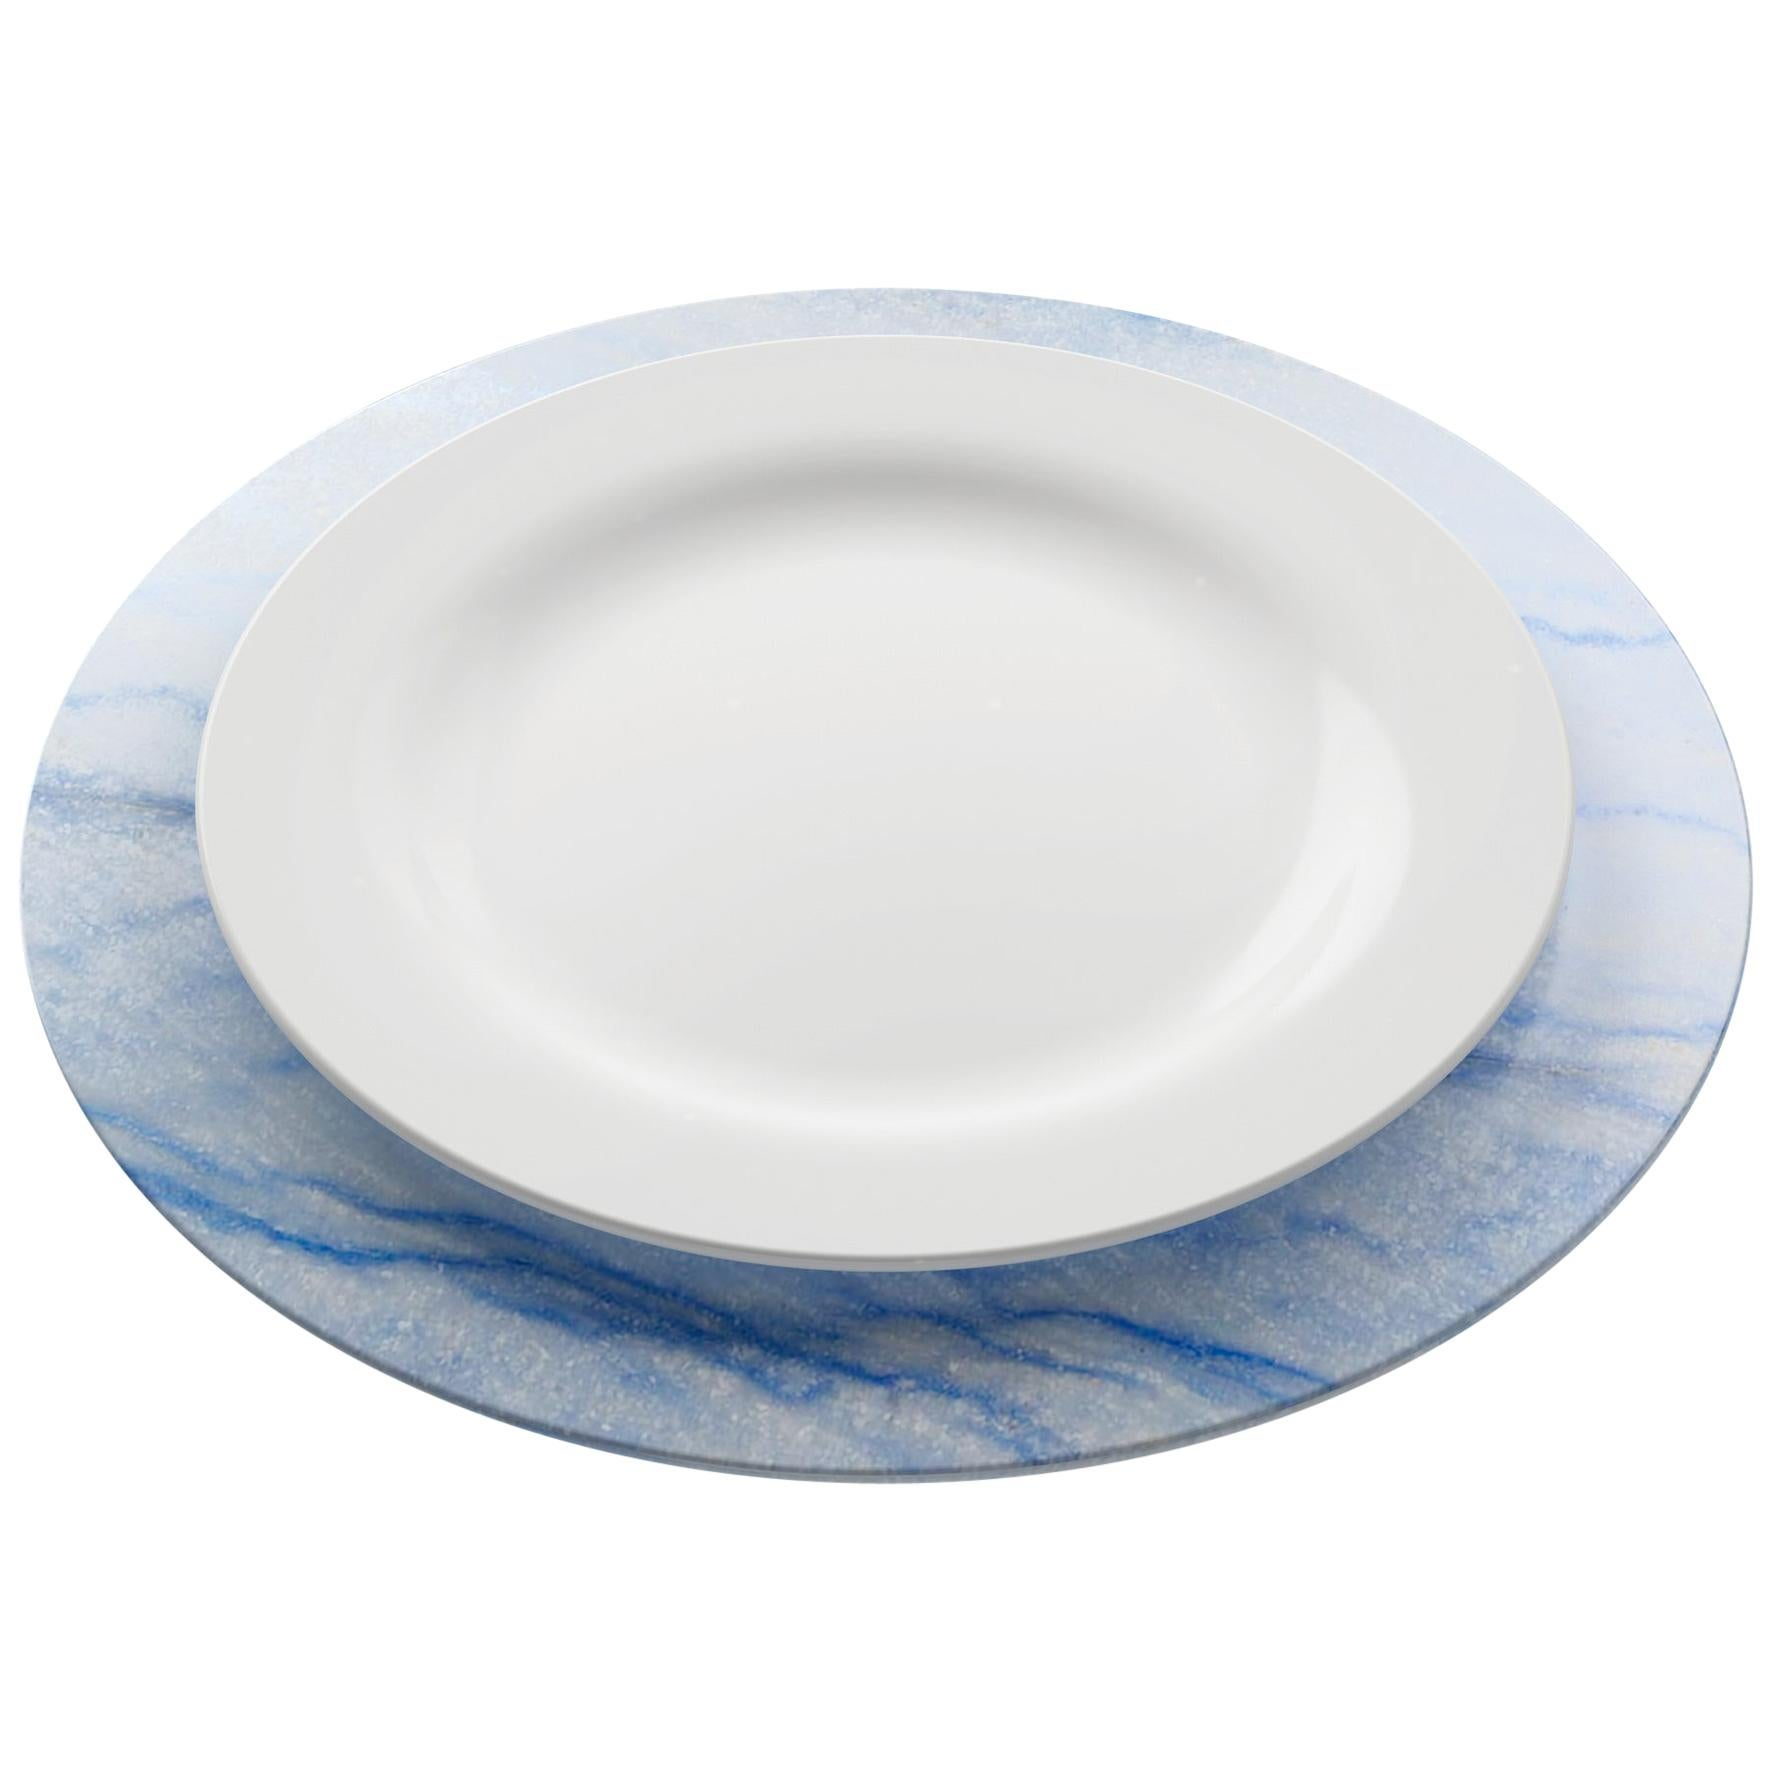 Set of 6 Charger Plates in Blue Azul Macaubas Design by Pieruga Marble, Italy